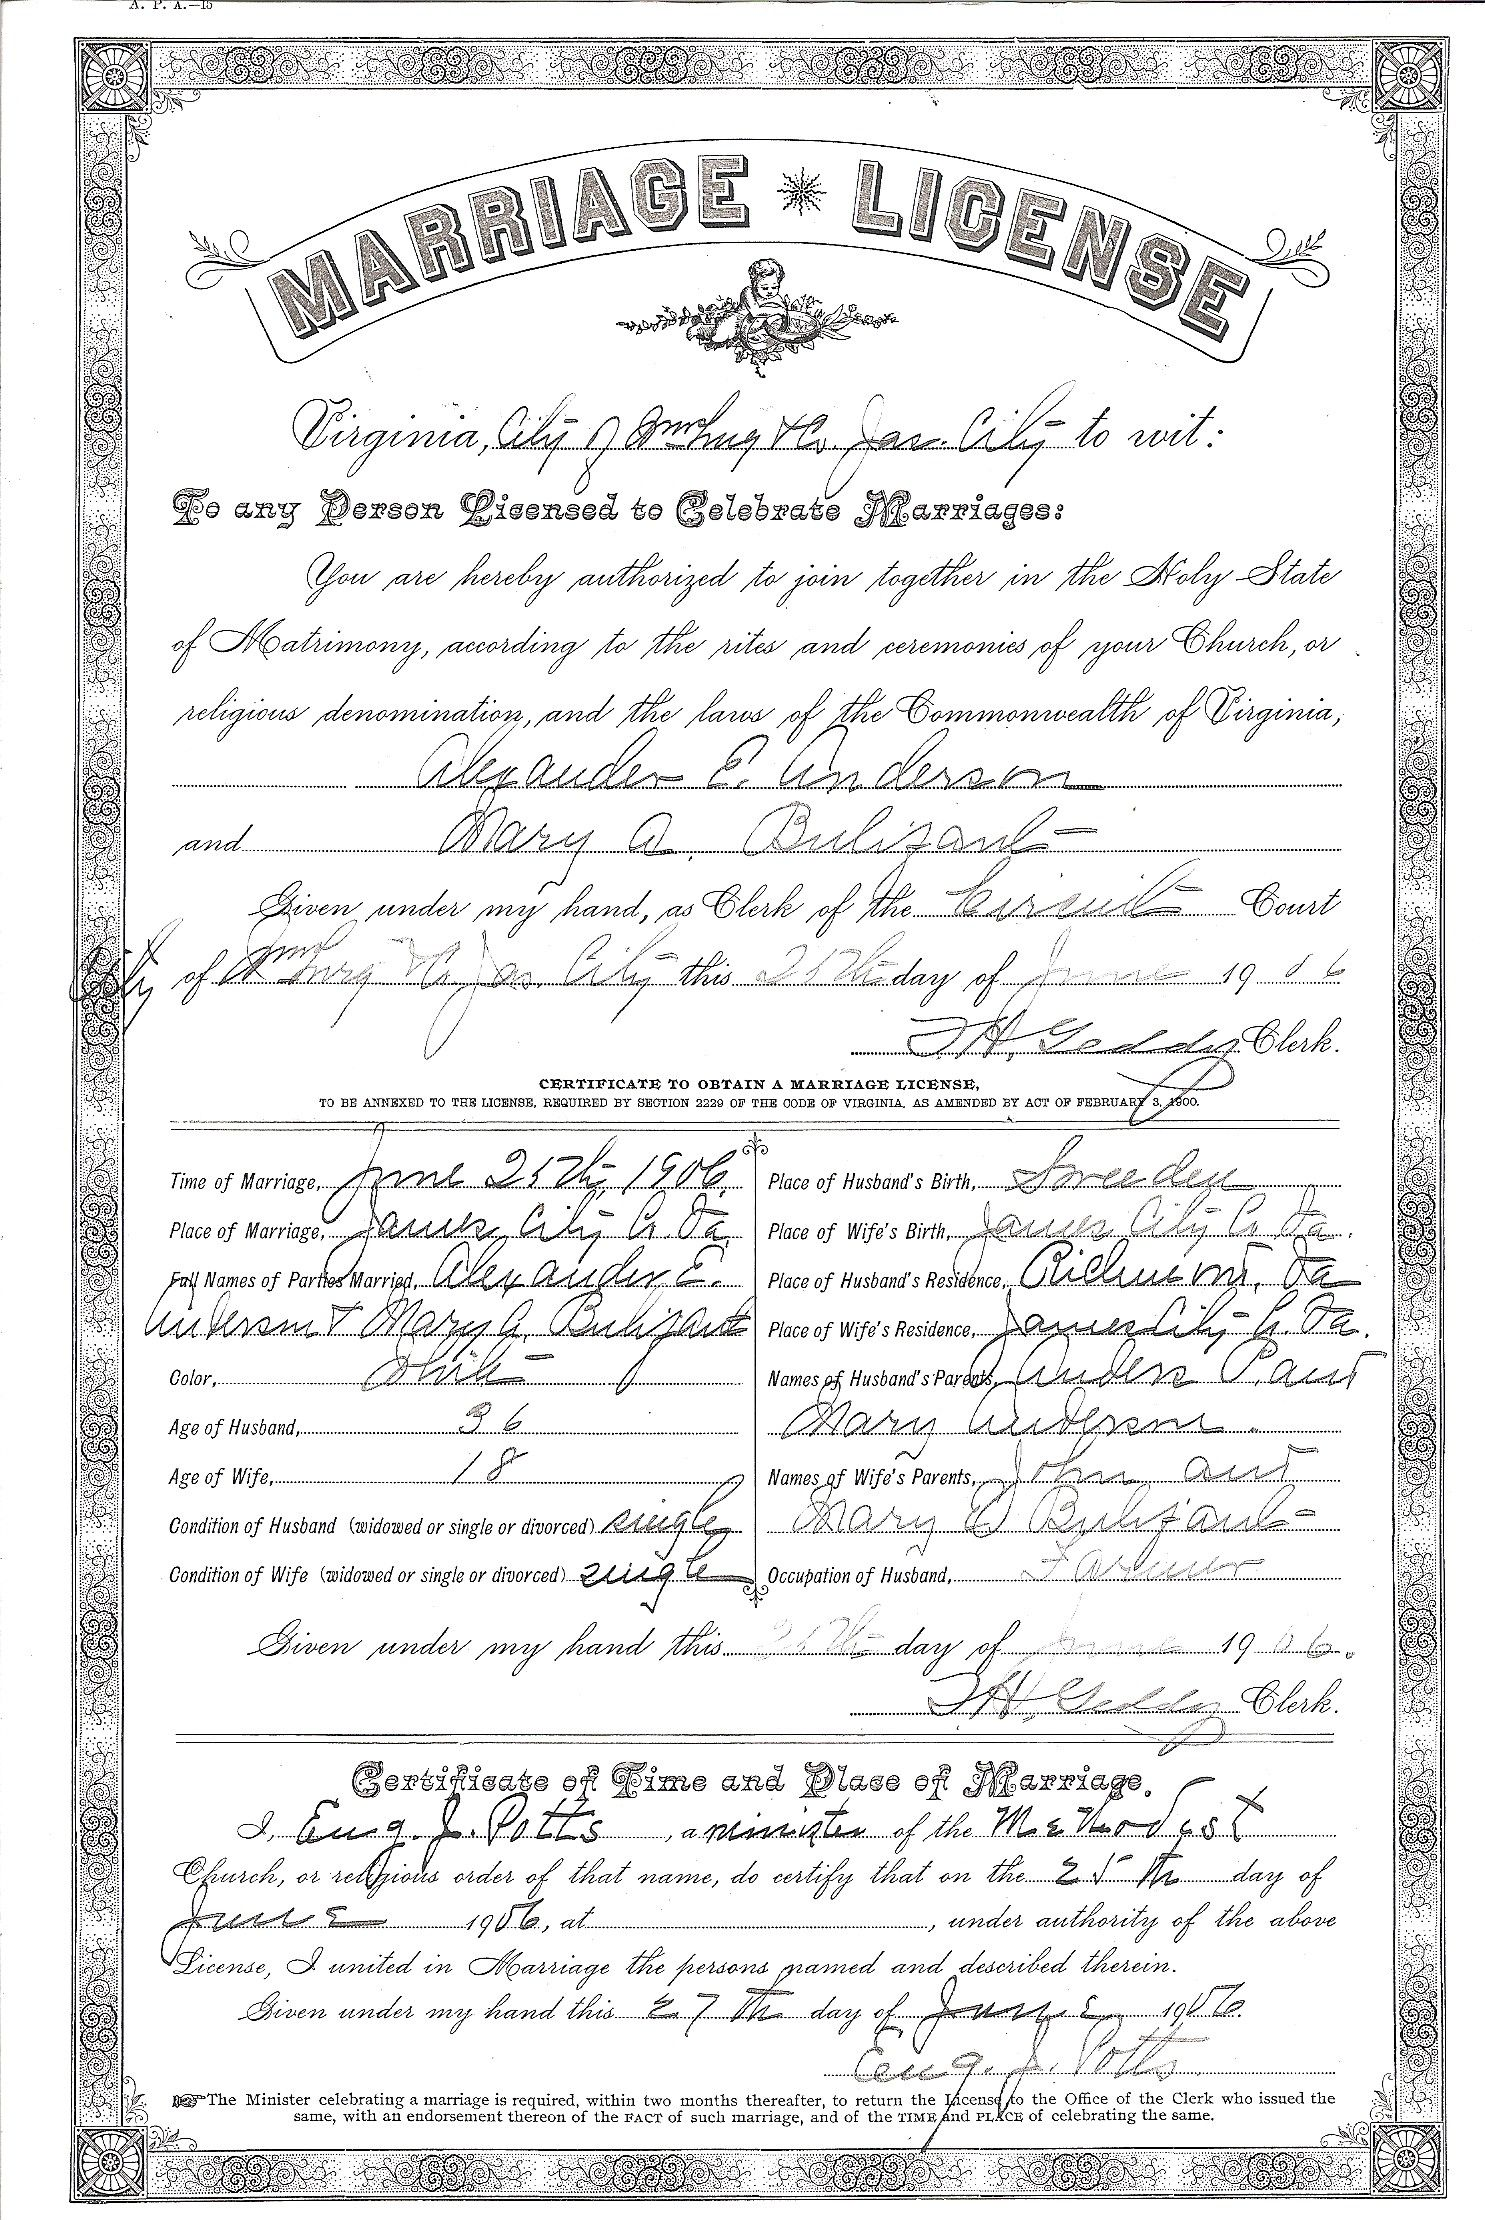 Marriage License Of Alexander Anderson And Mary Adelia Bulifant